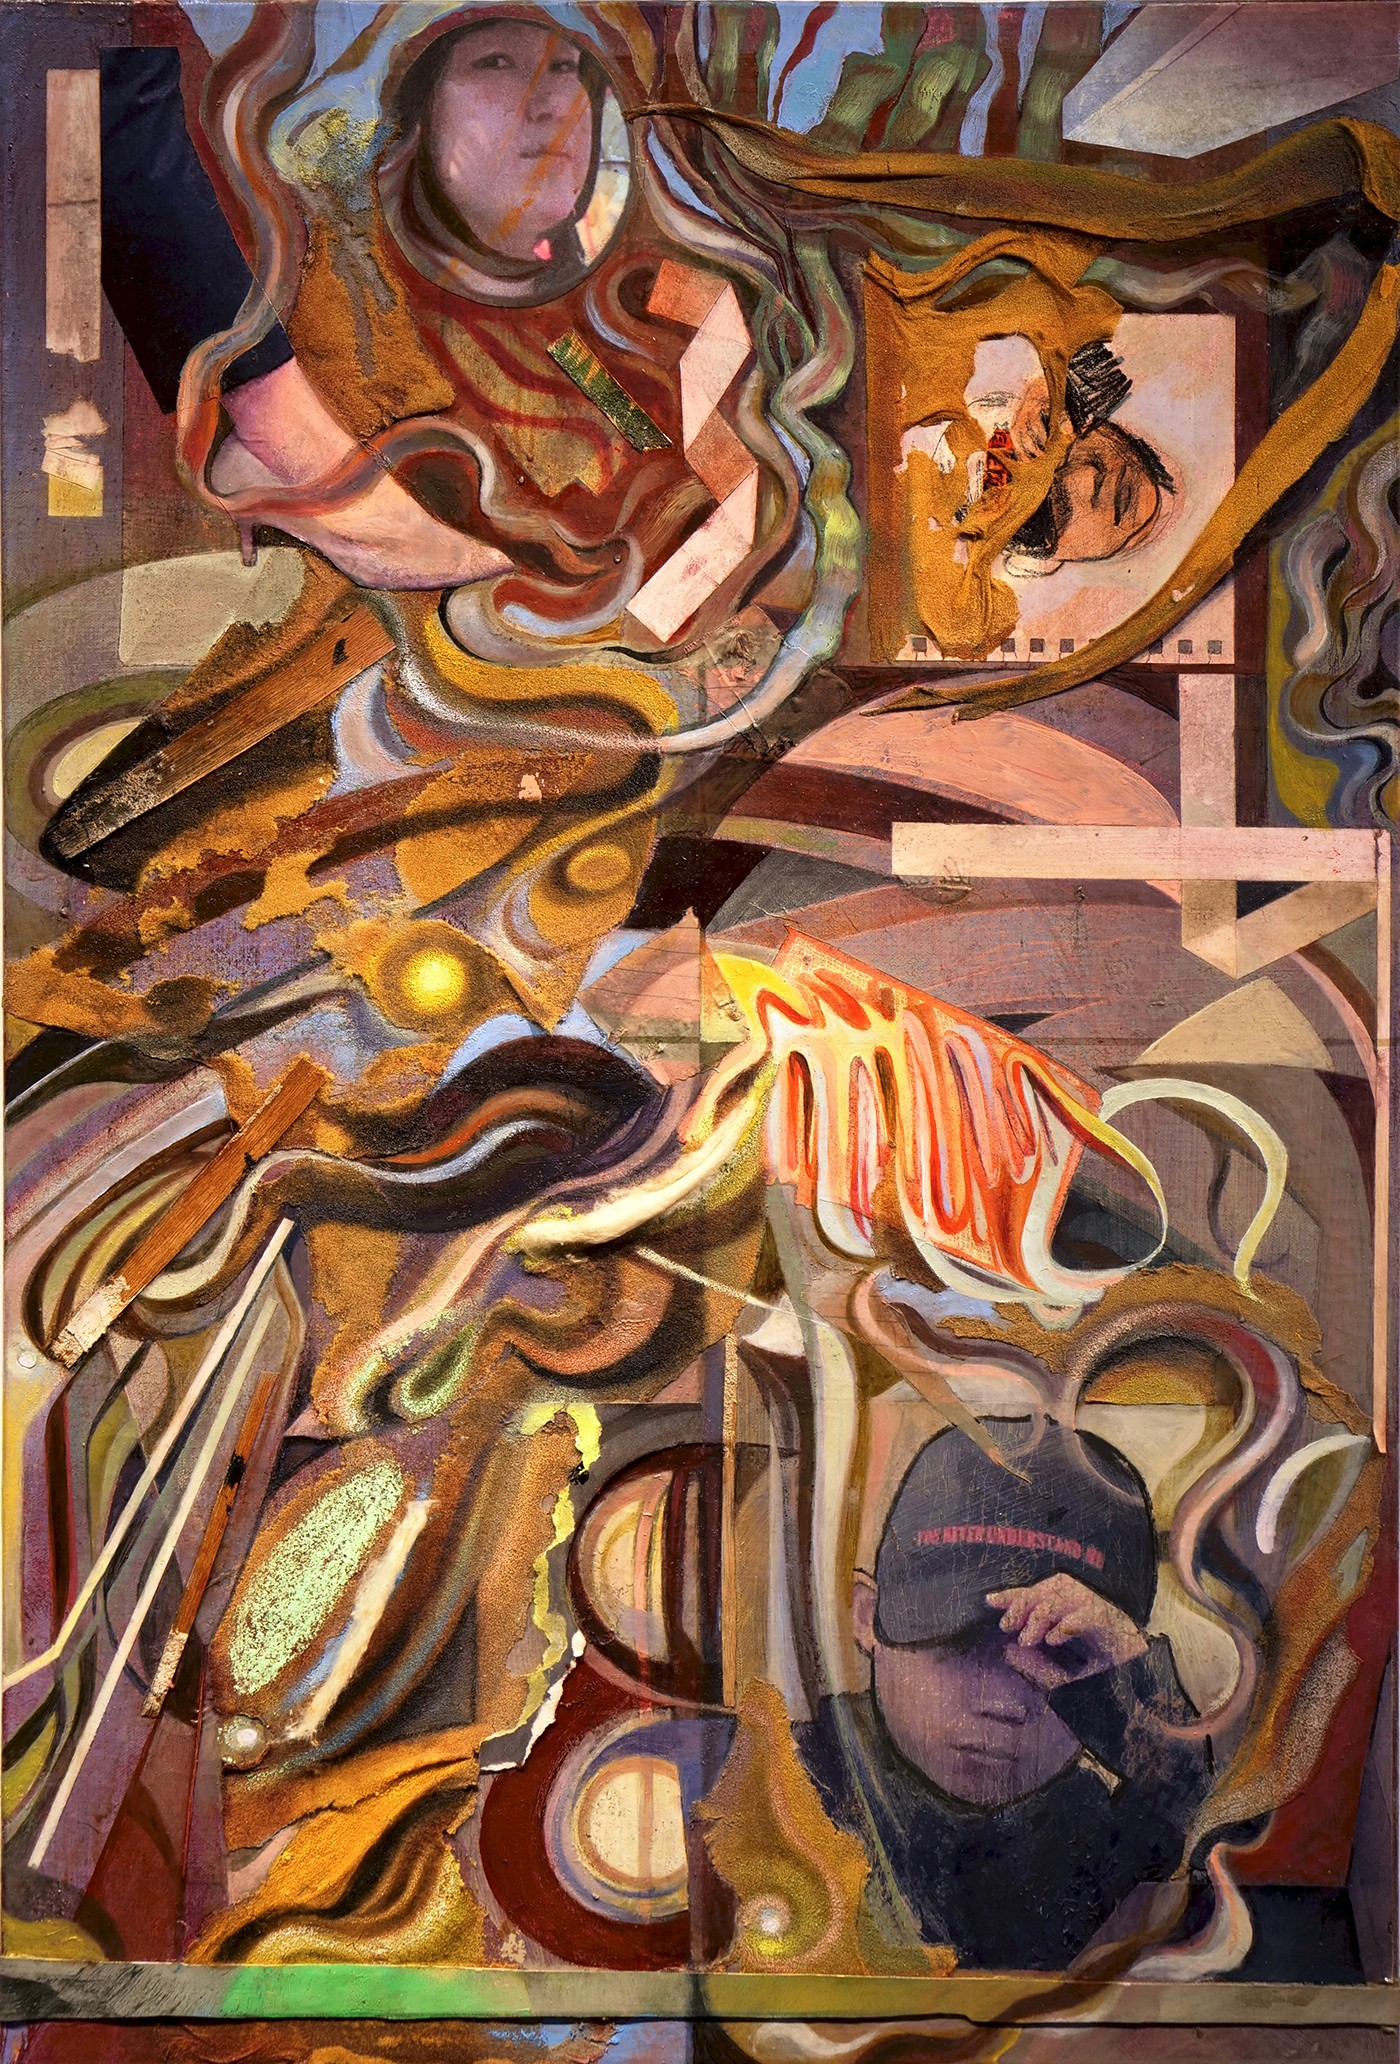 Various pictures (a womans high heeled leg, a womans reflections in a mirror, a young boy wearing a baseball cap) are joined together by lots of abstract shapes and tendrils